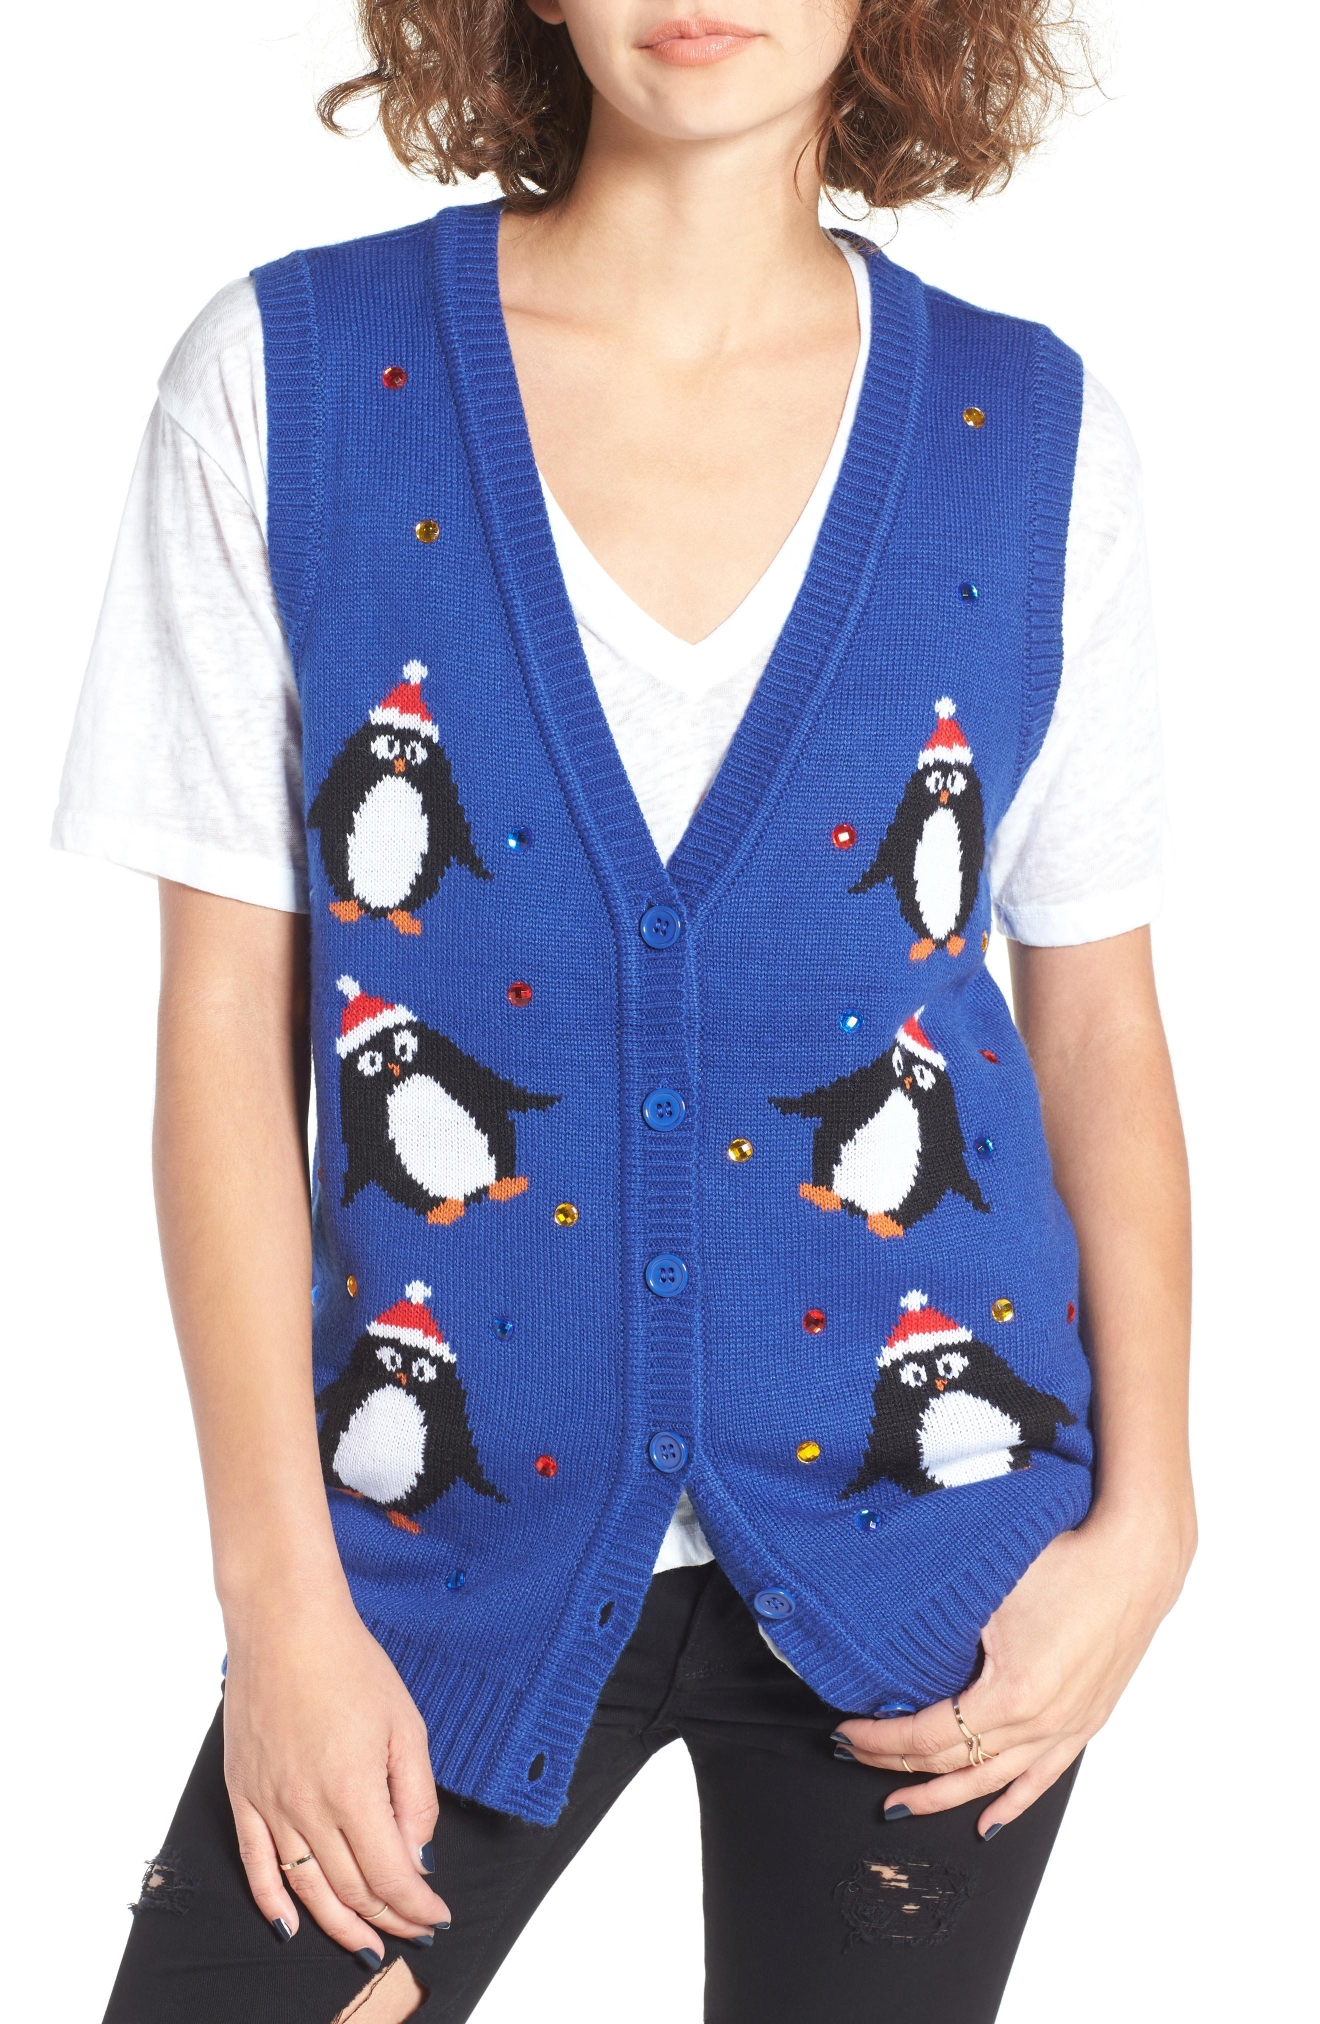 Love By Design Embellished Penguin Sweater Vest, $39(Photo: Nordstrom)